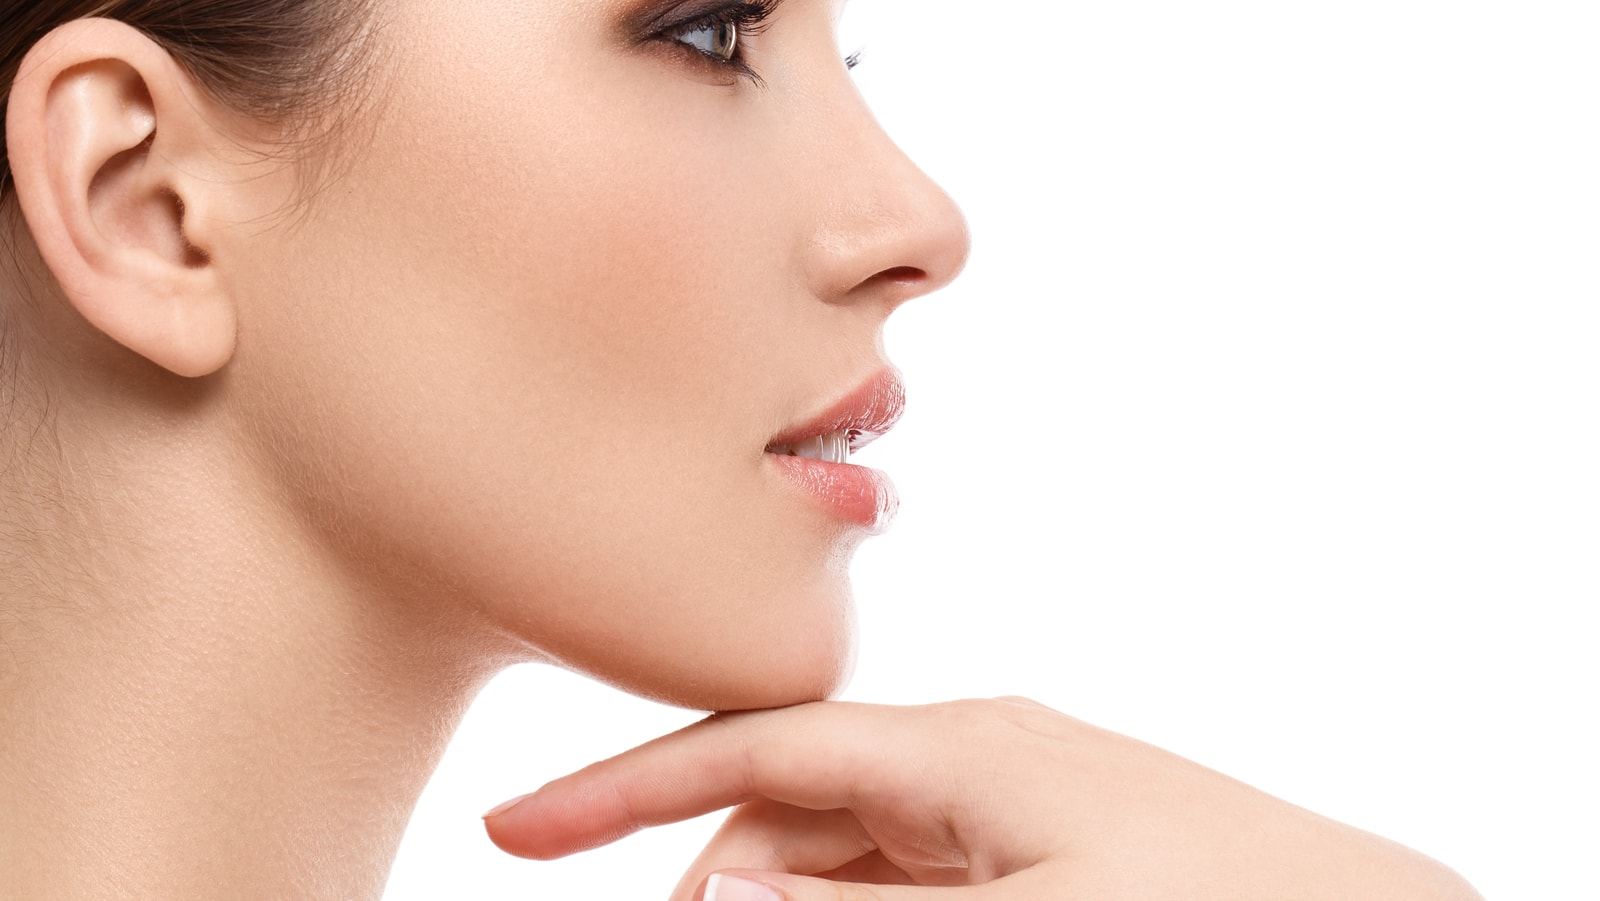 Dimpleplasty Surgically Makes Dimples | Cosmetic Town